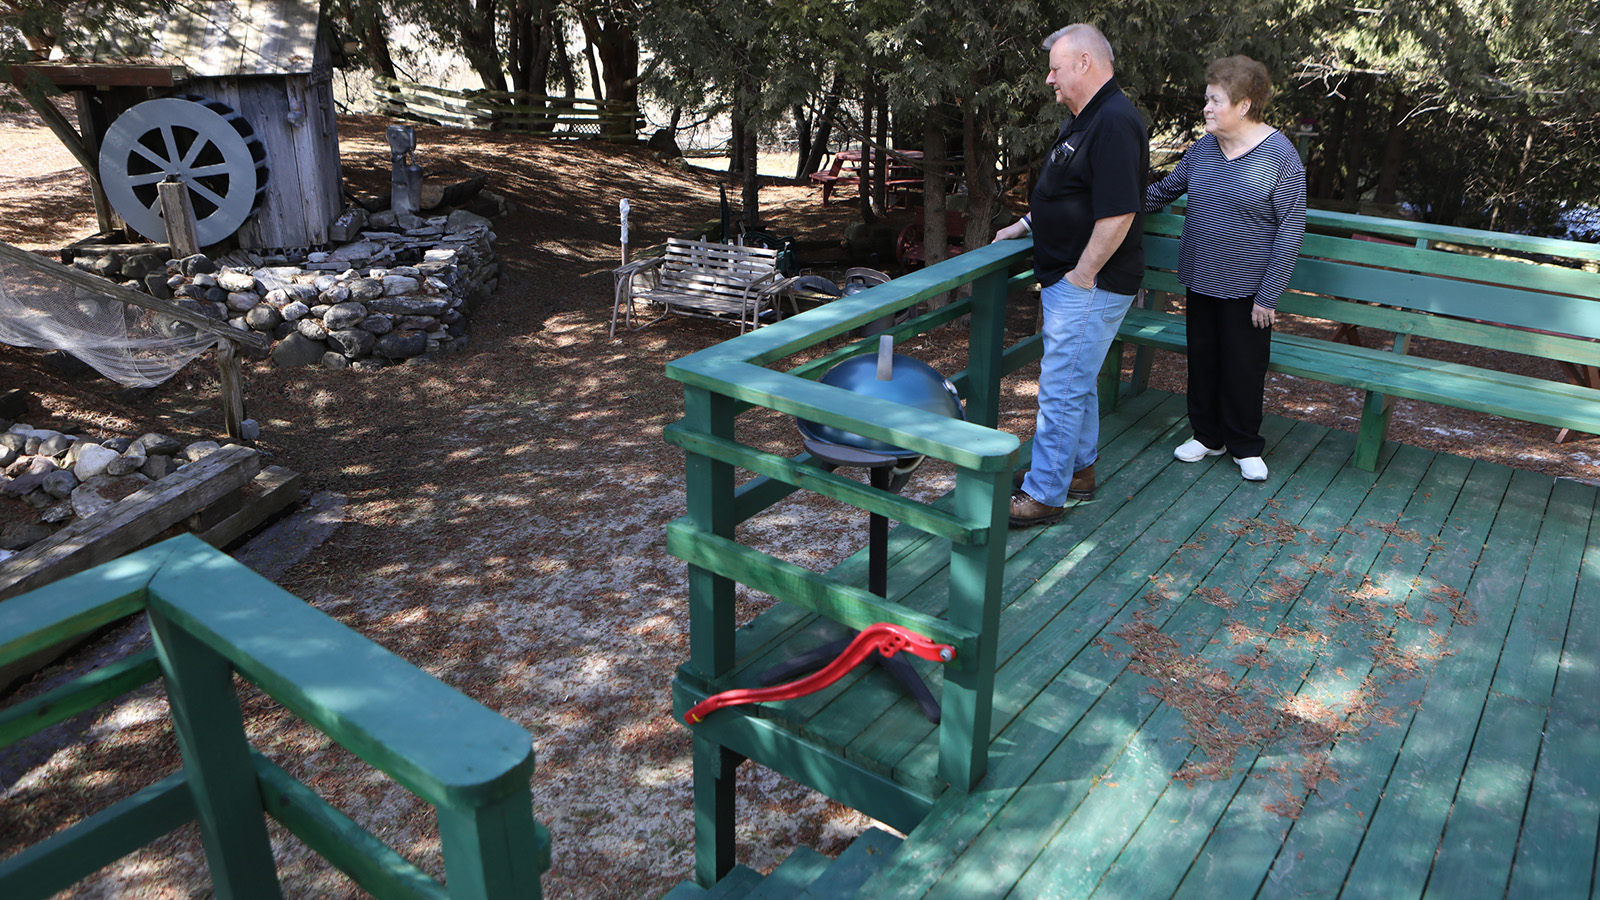 Two people stand on a deck and look at a well in their backyard.